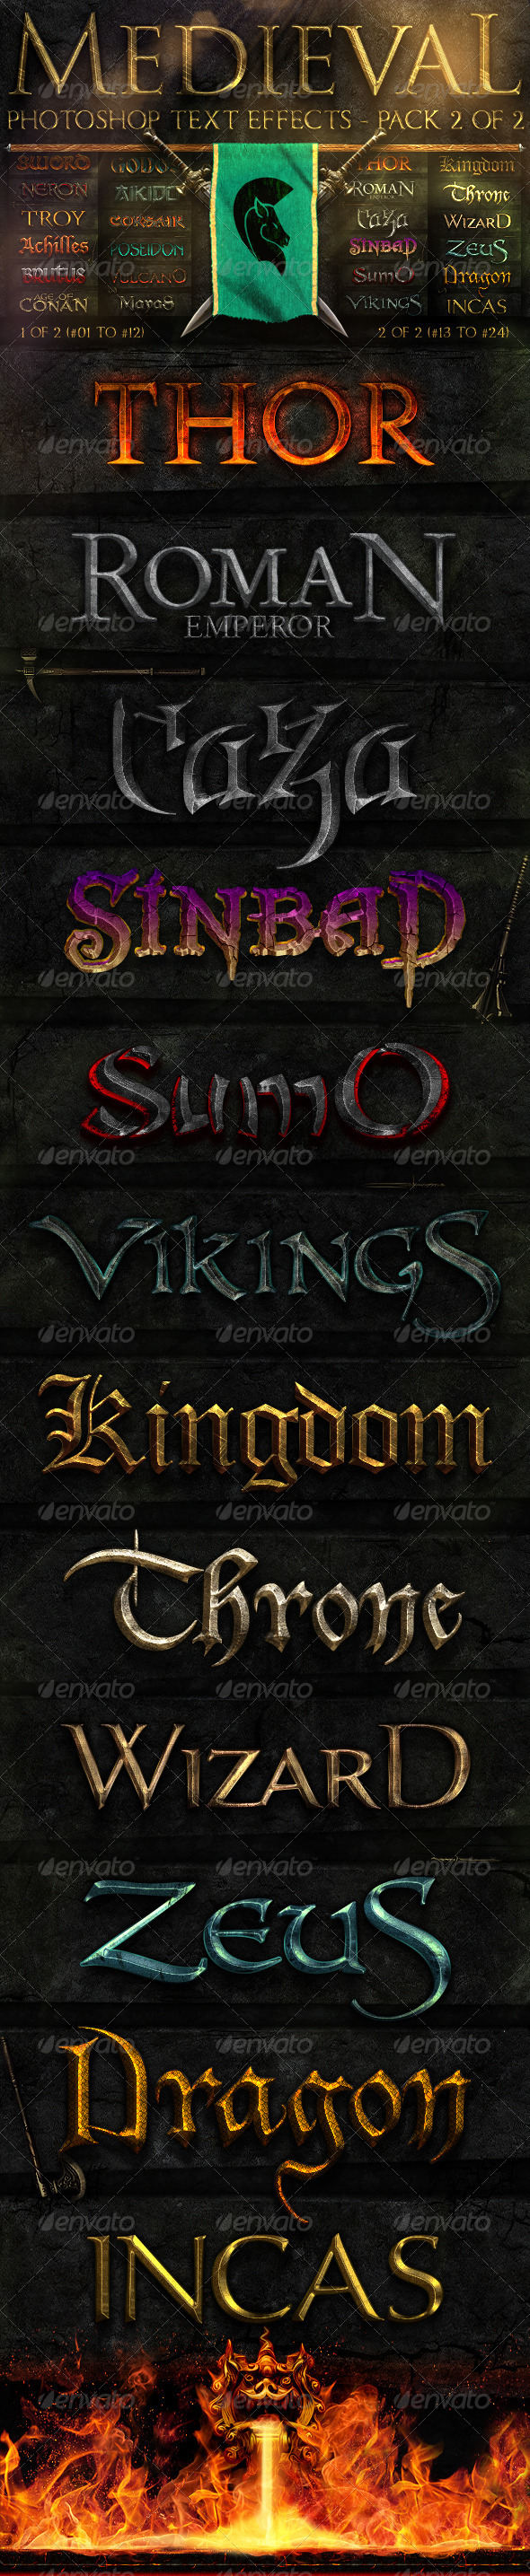 GraphicRiver Medieval Photoshop Text Effects 2 of 2 289731